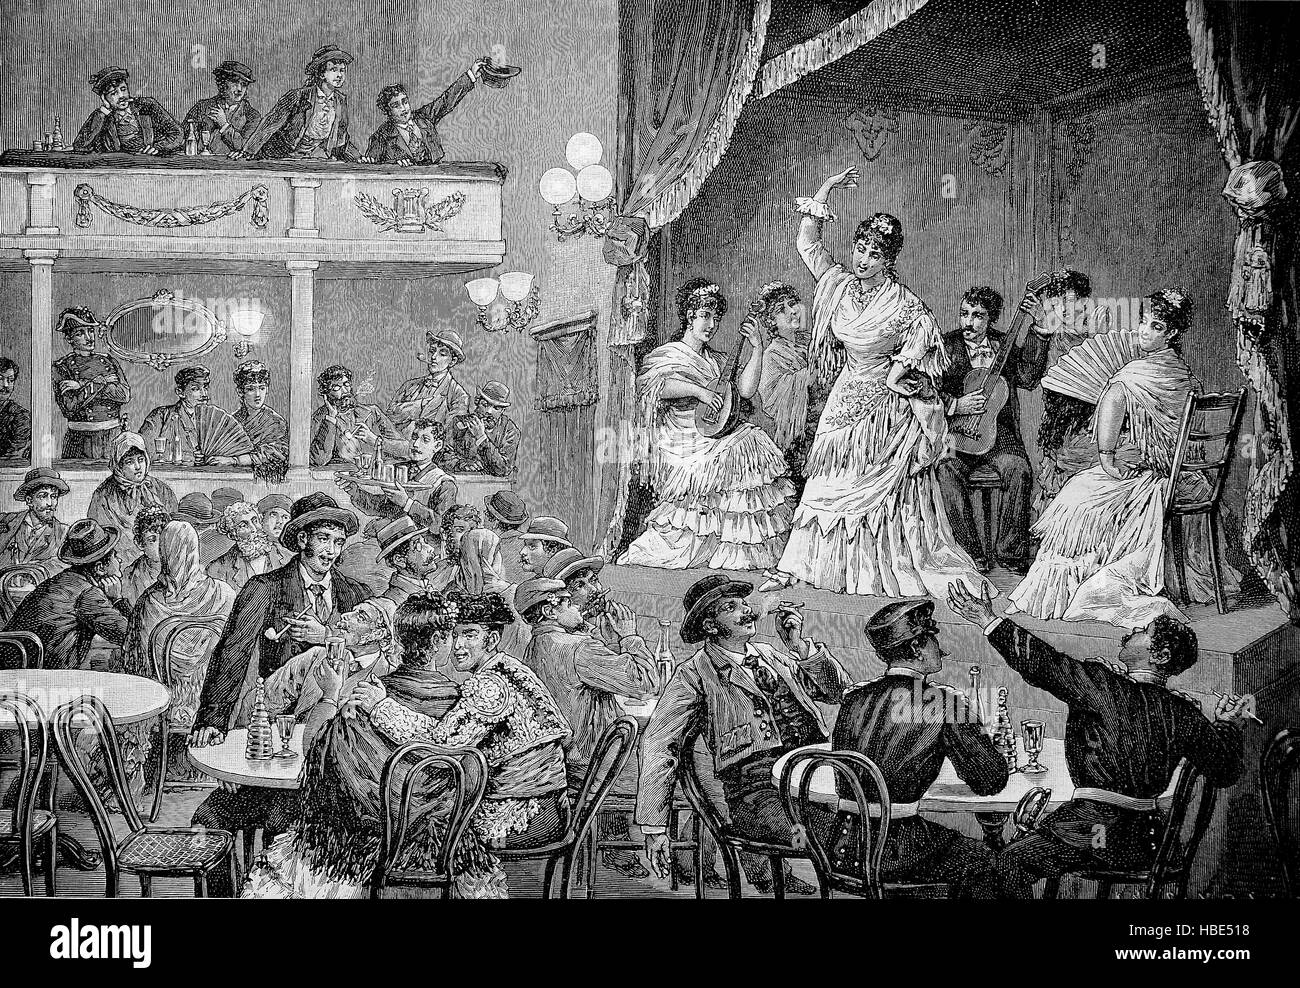 People's theater in Spain in the 19. century, illustration, woodcut from 1880 - Stock Image